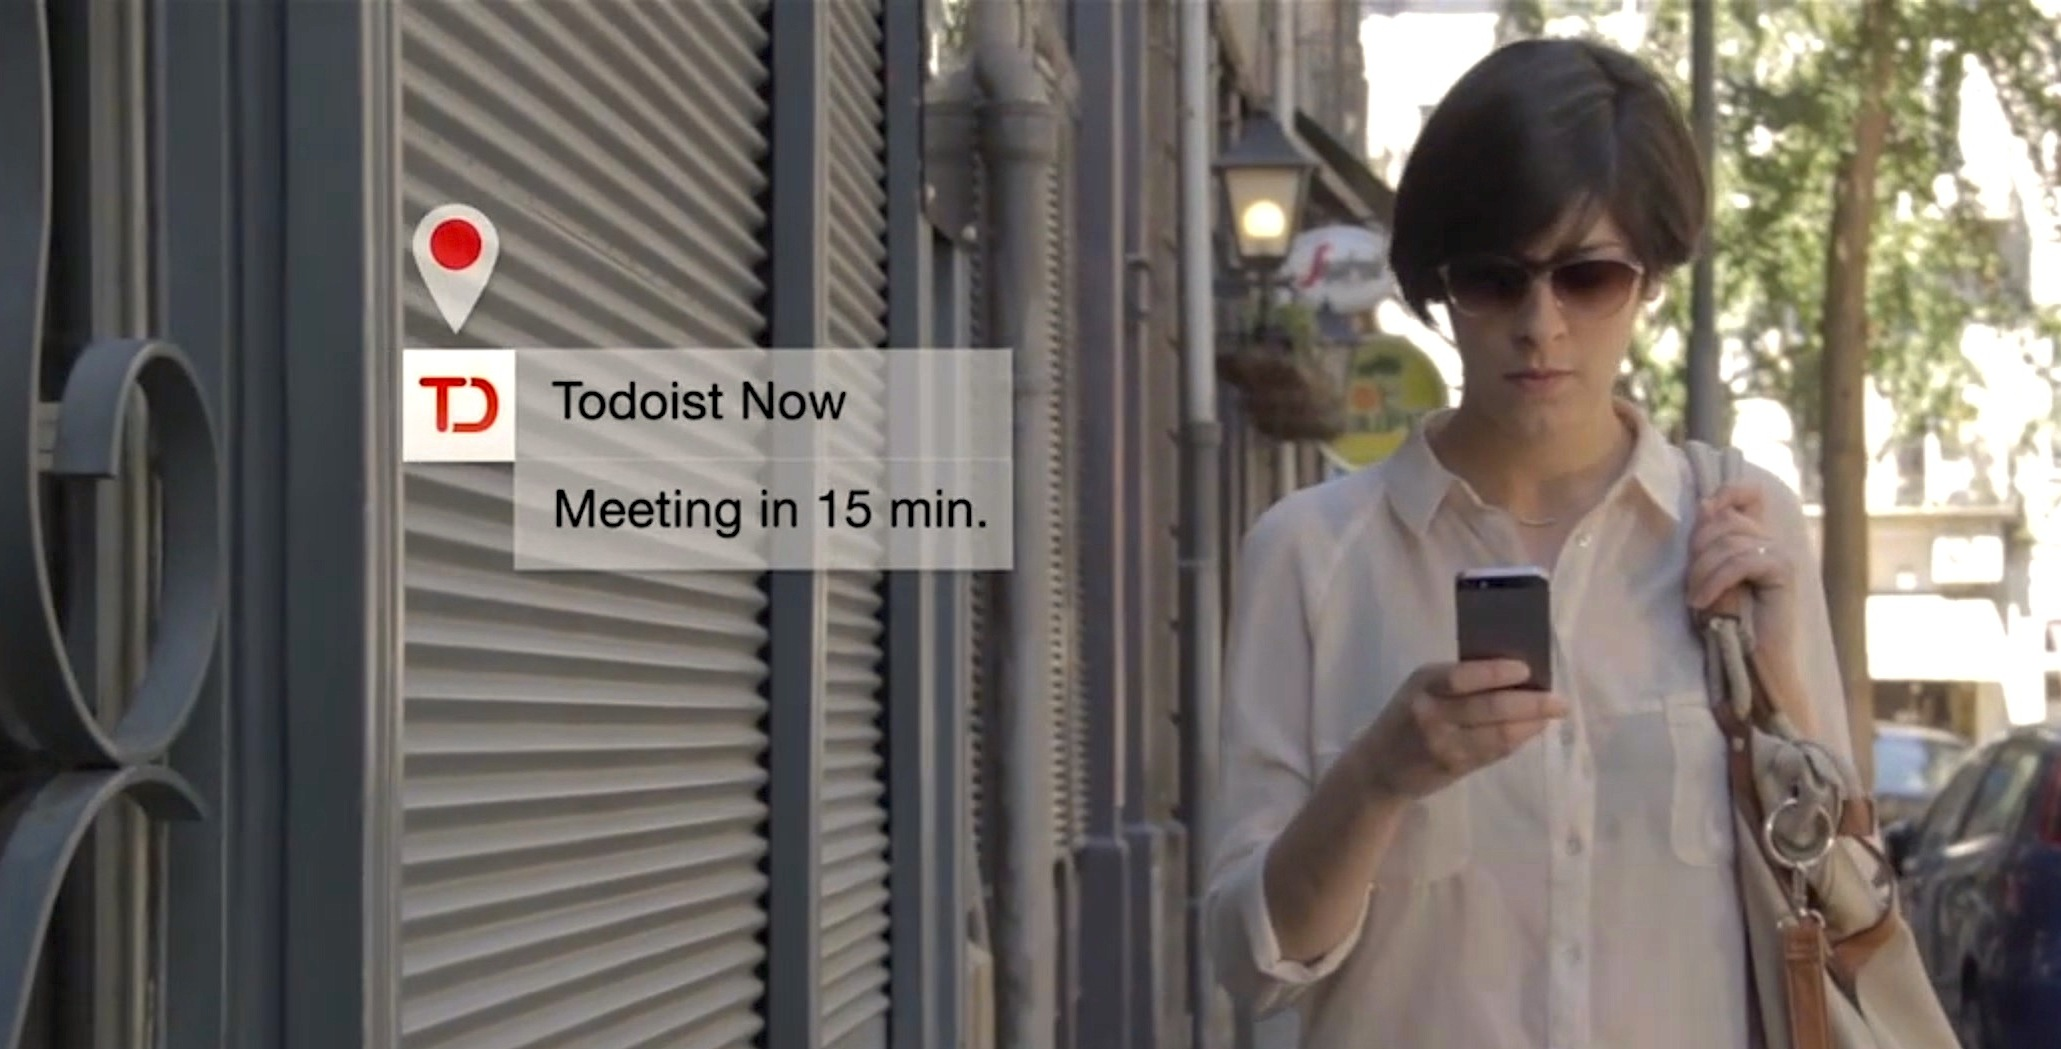 Todoist Lets you Set Location-Based Reminders